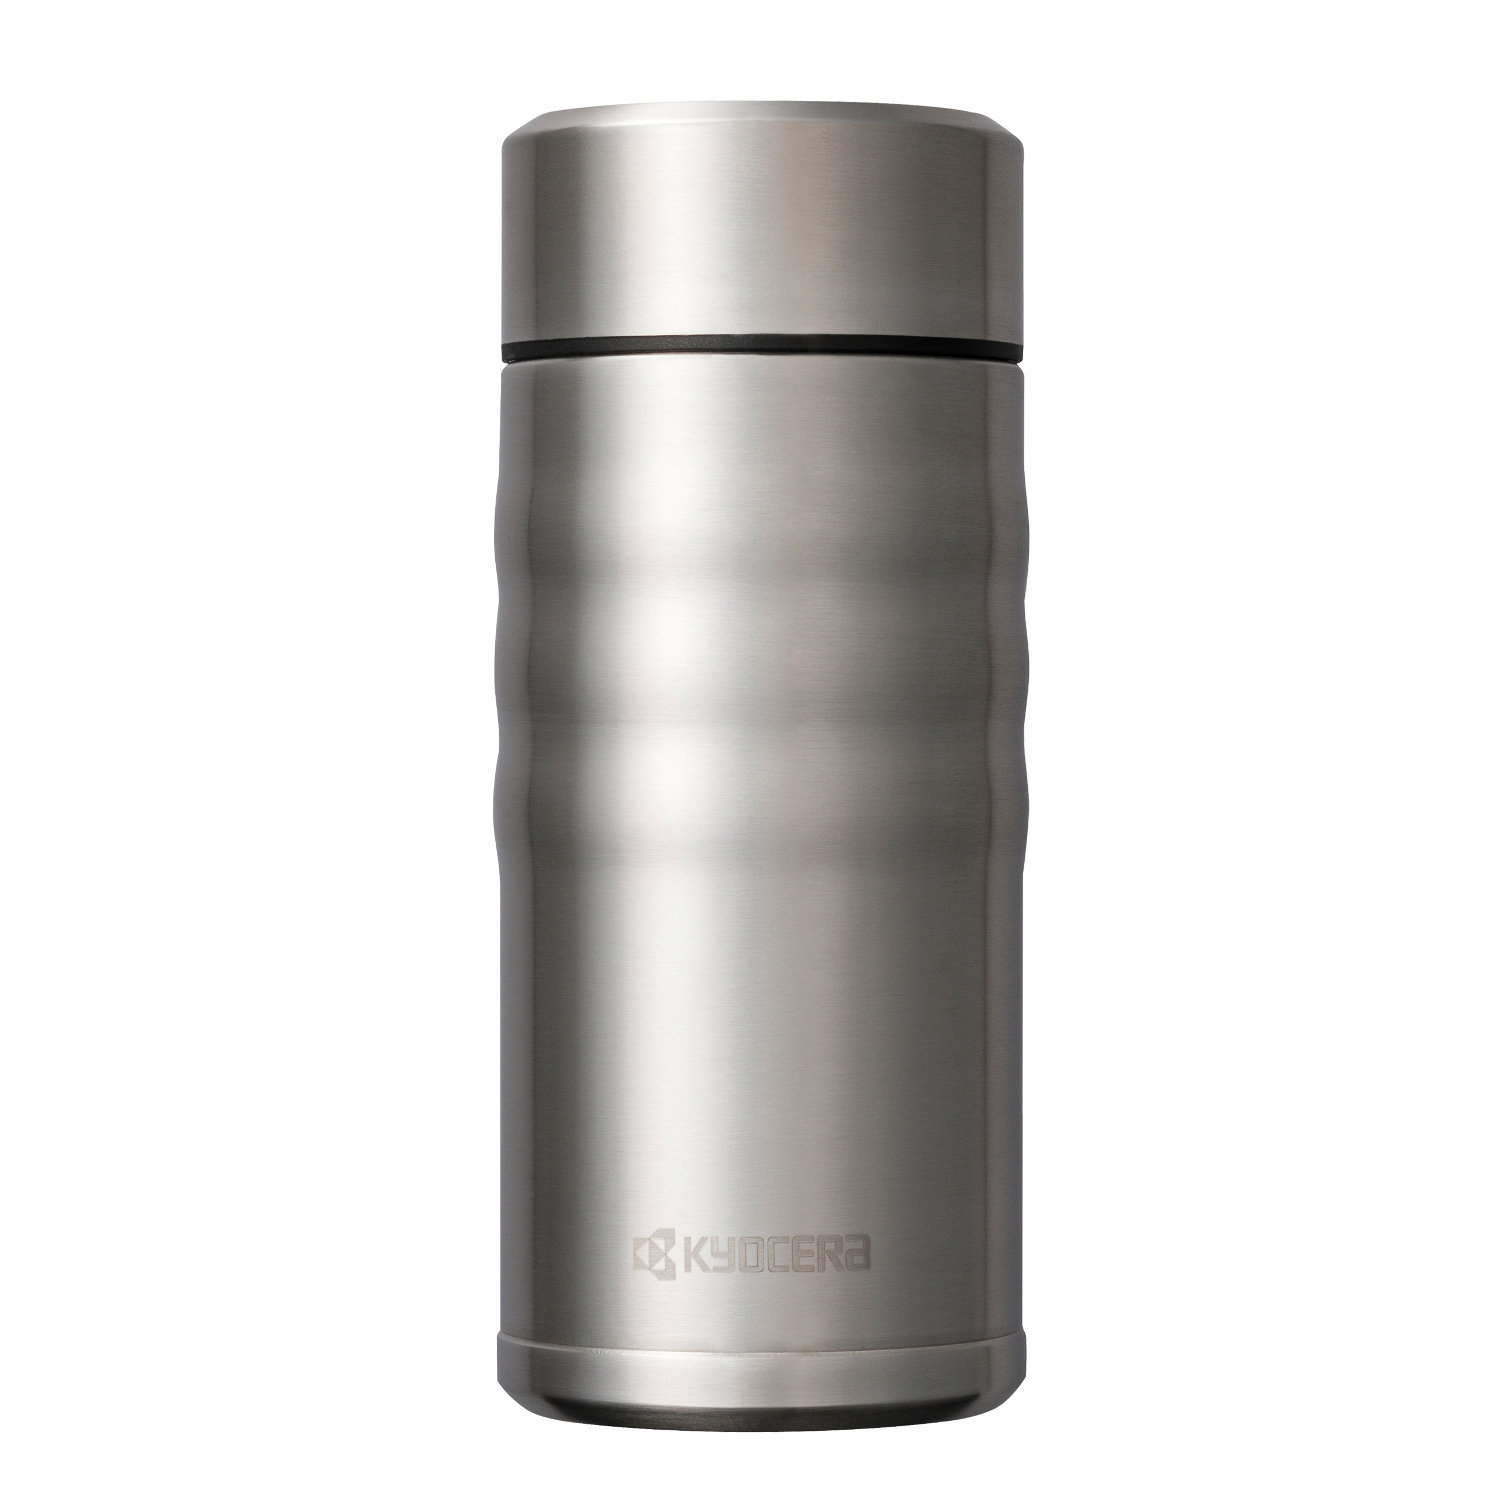 Kyocera Stainless Steel 12 Ounce Twist Top Insulated Travel Mug